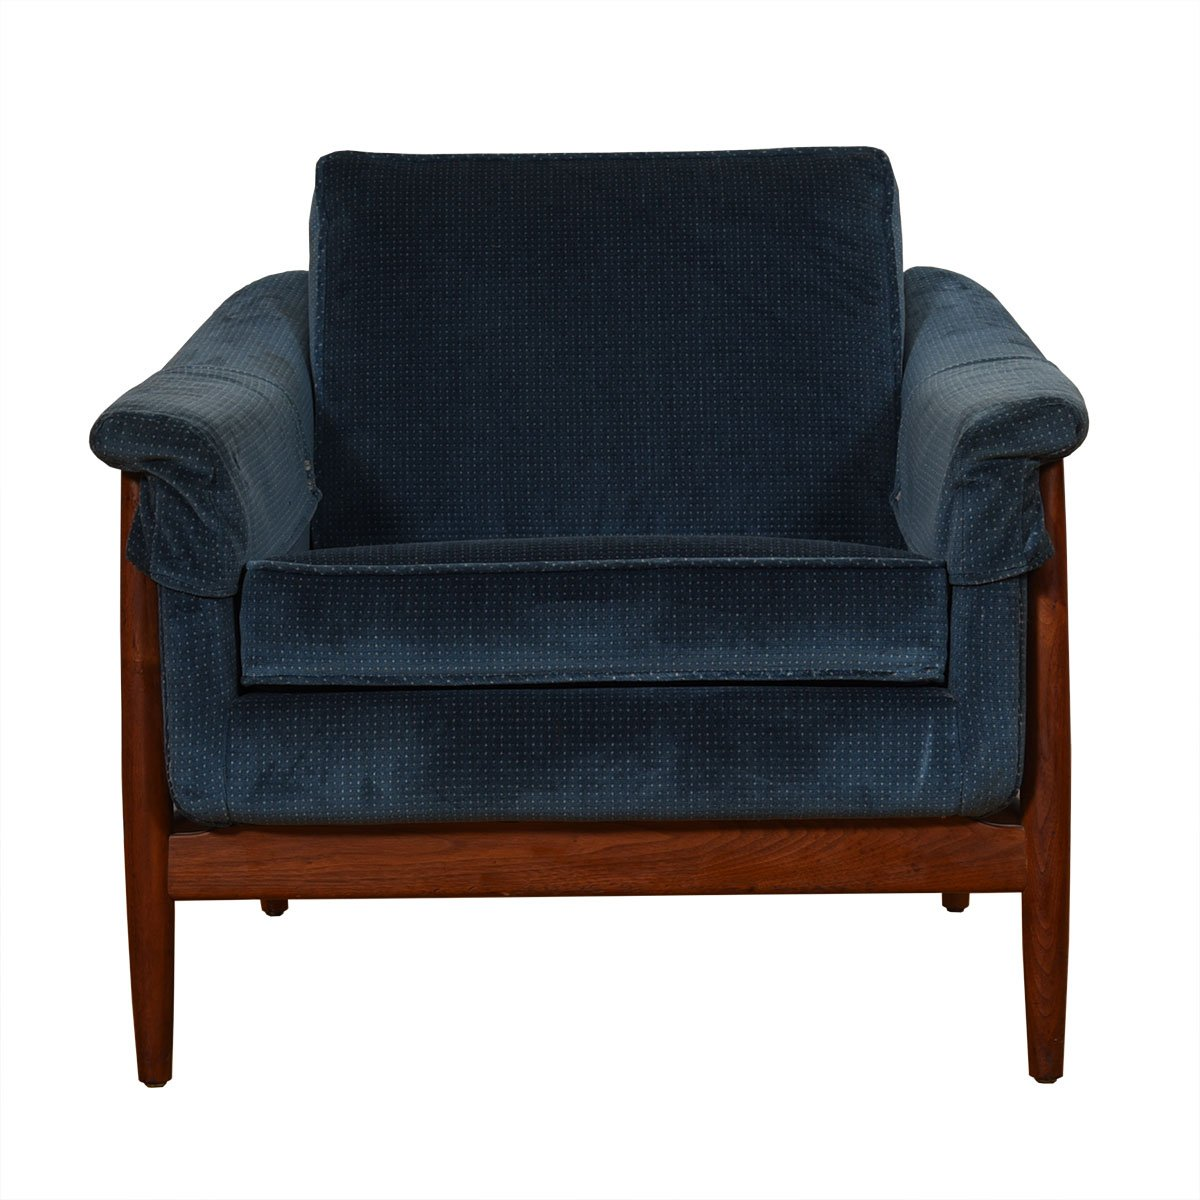 Pair of 1950's Swedish Teak Club Chairs by Dux w/ Blue Patterned Upholstery